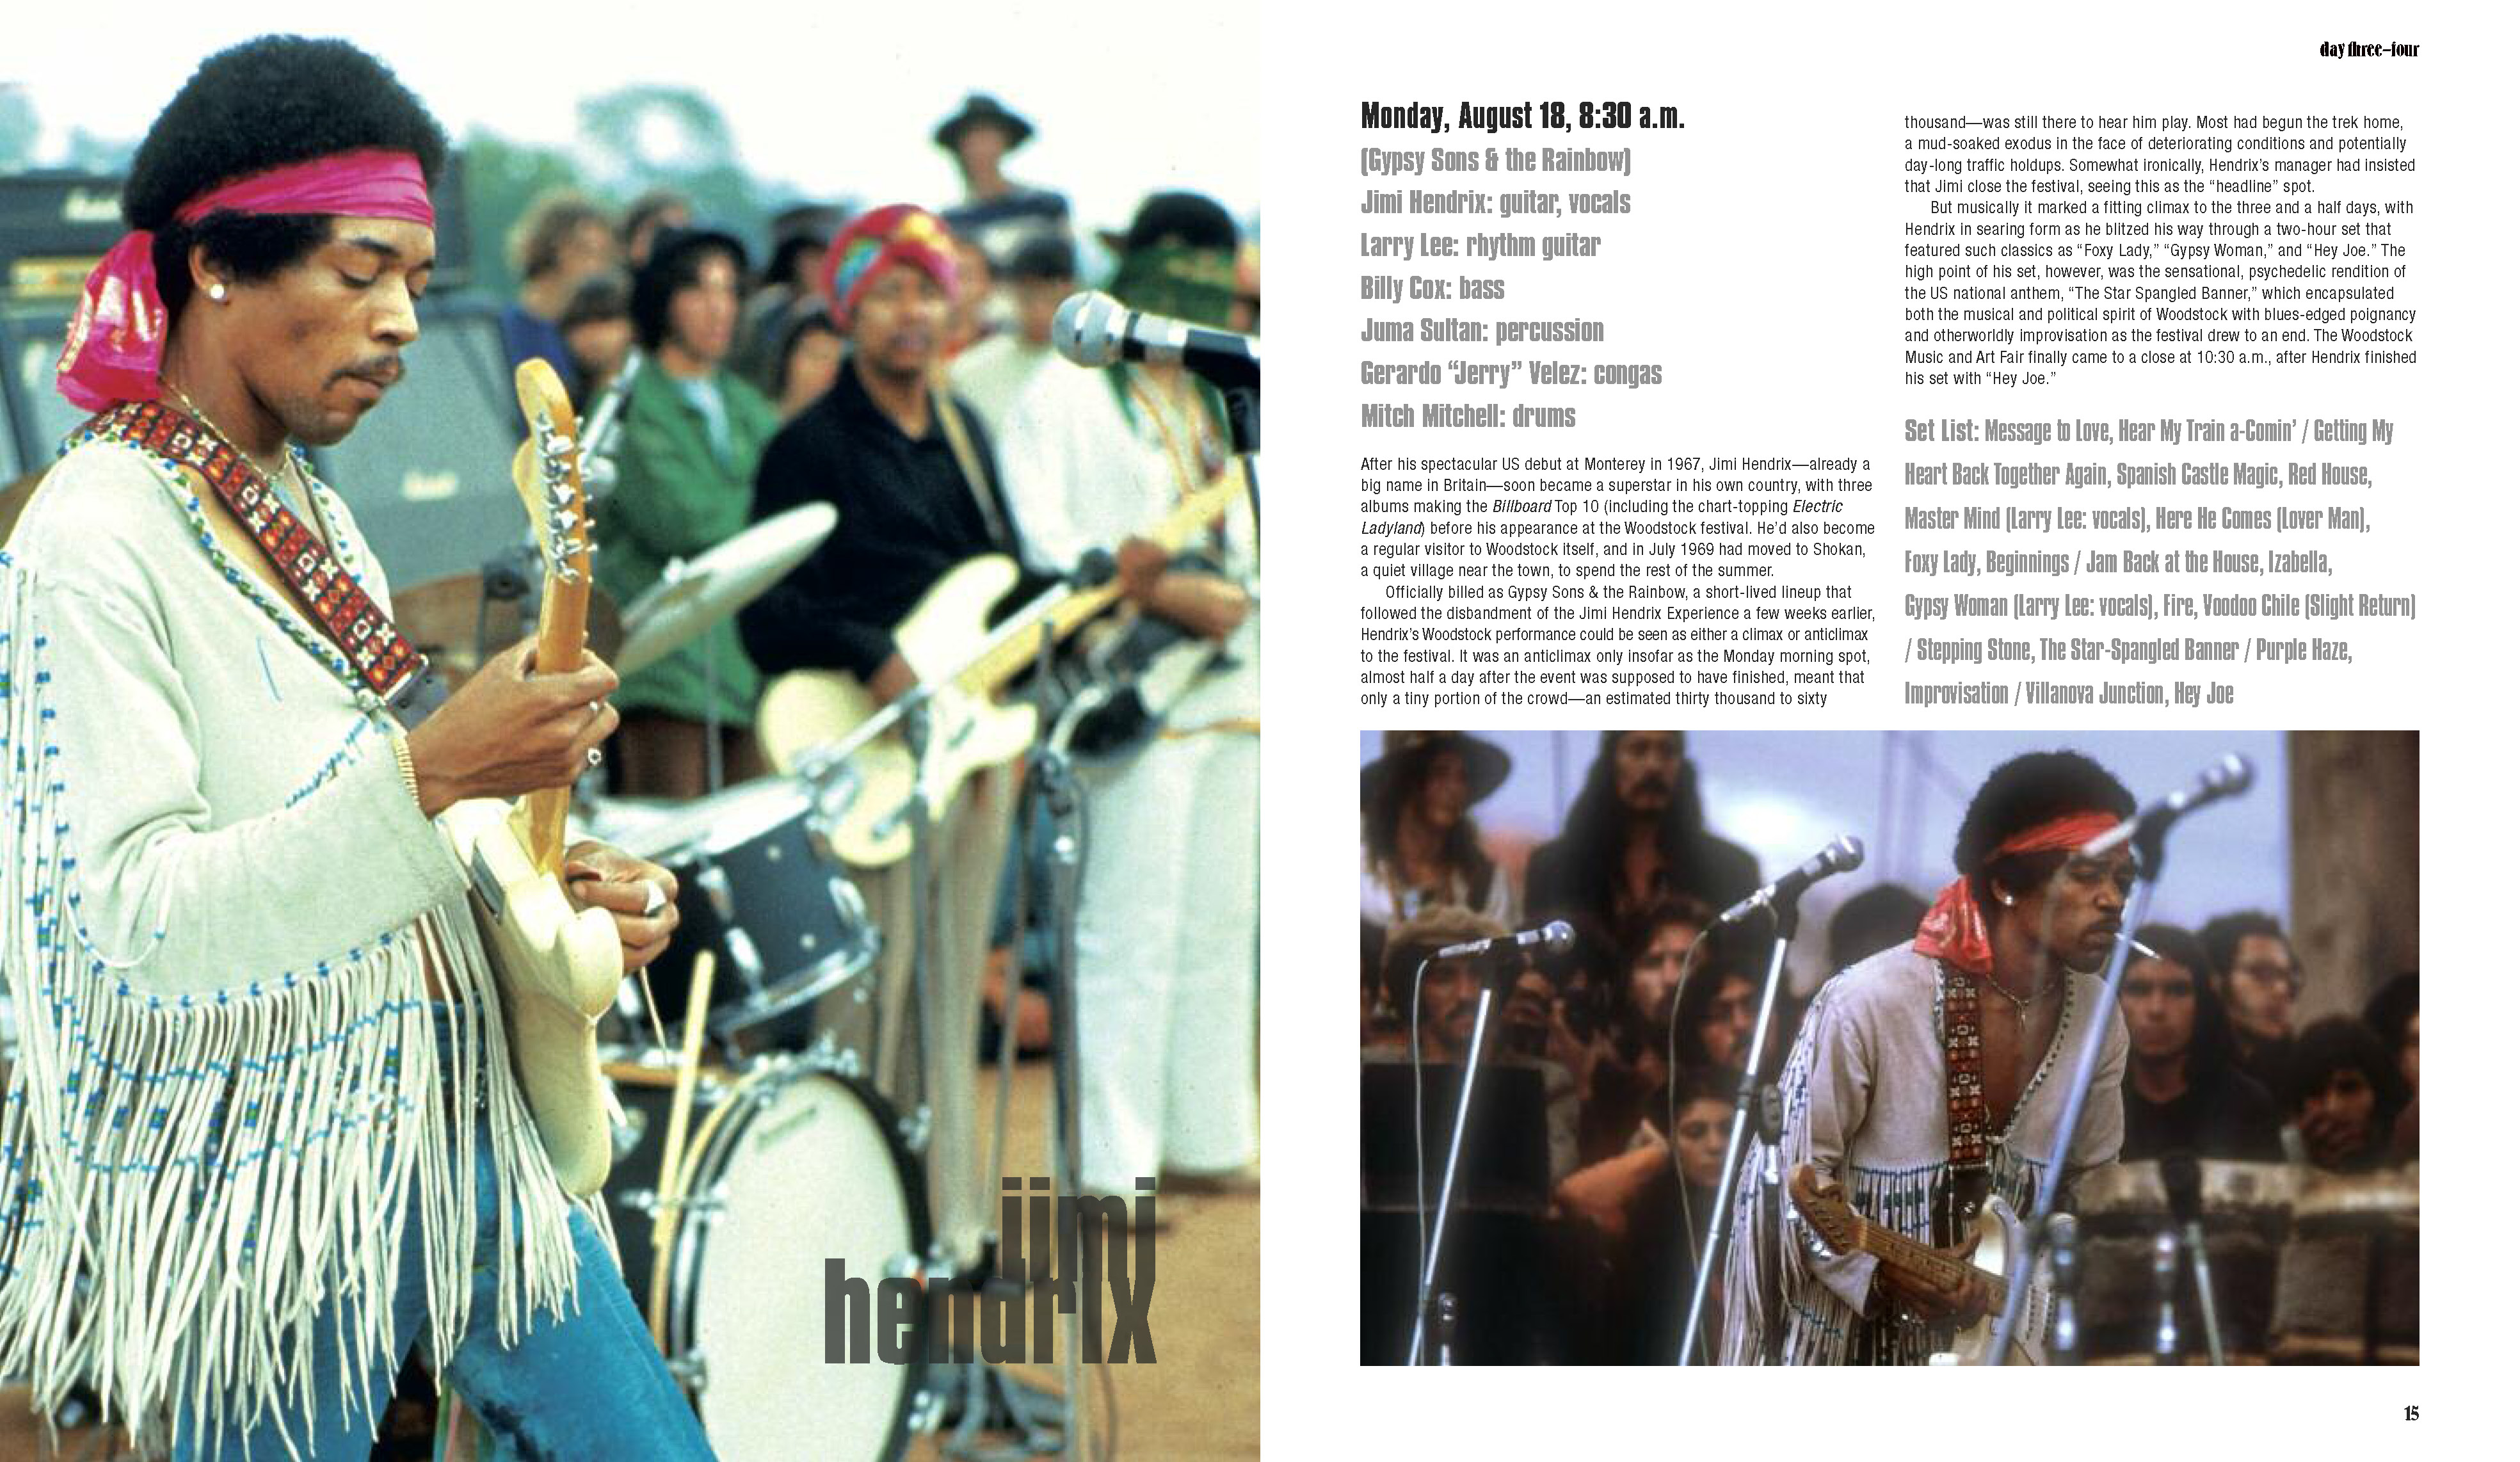 Woodstock 50th Anniversary Edition Three Days that Rocked the World